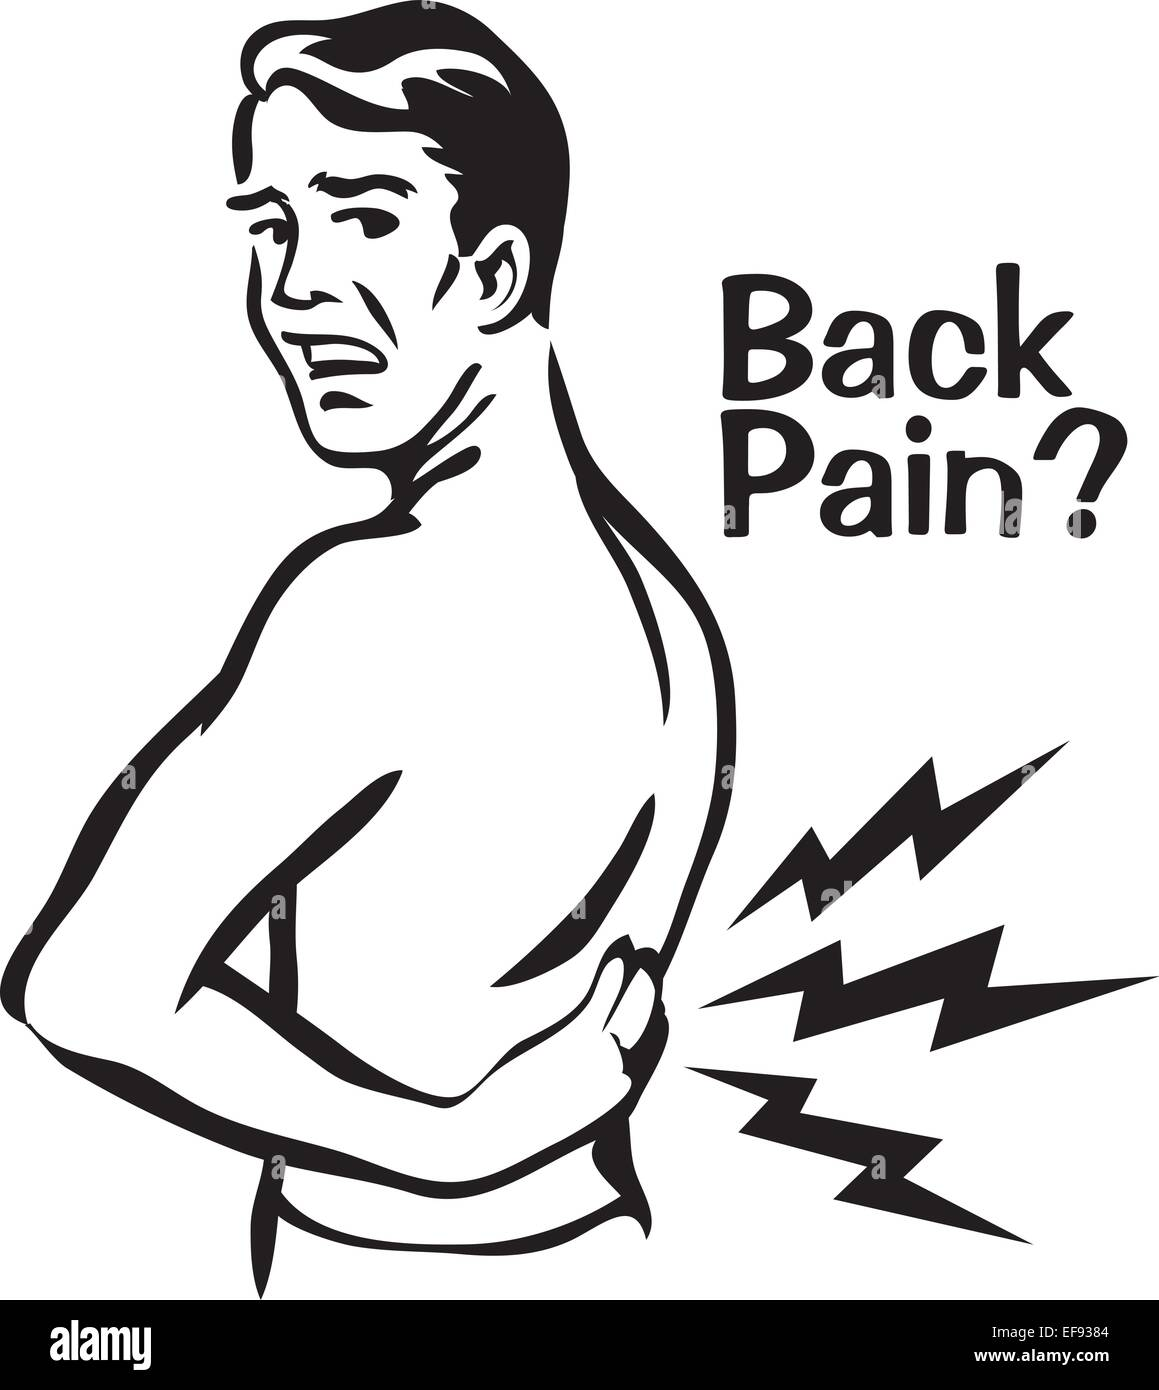 Man Suffering From Back Pain - Stock Image